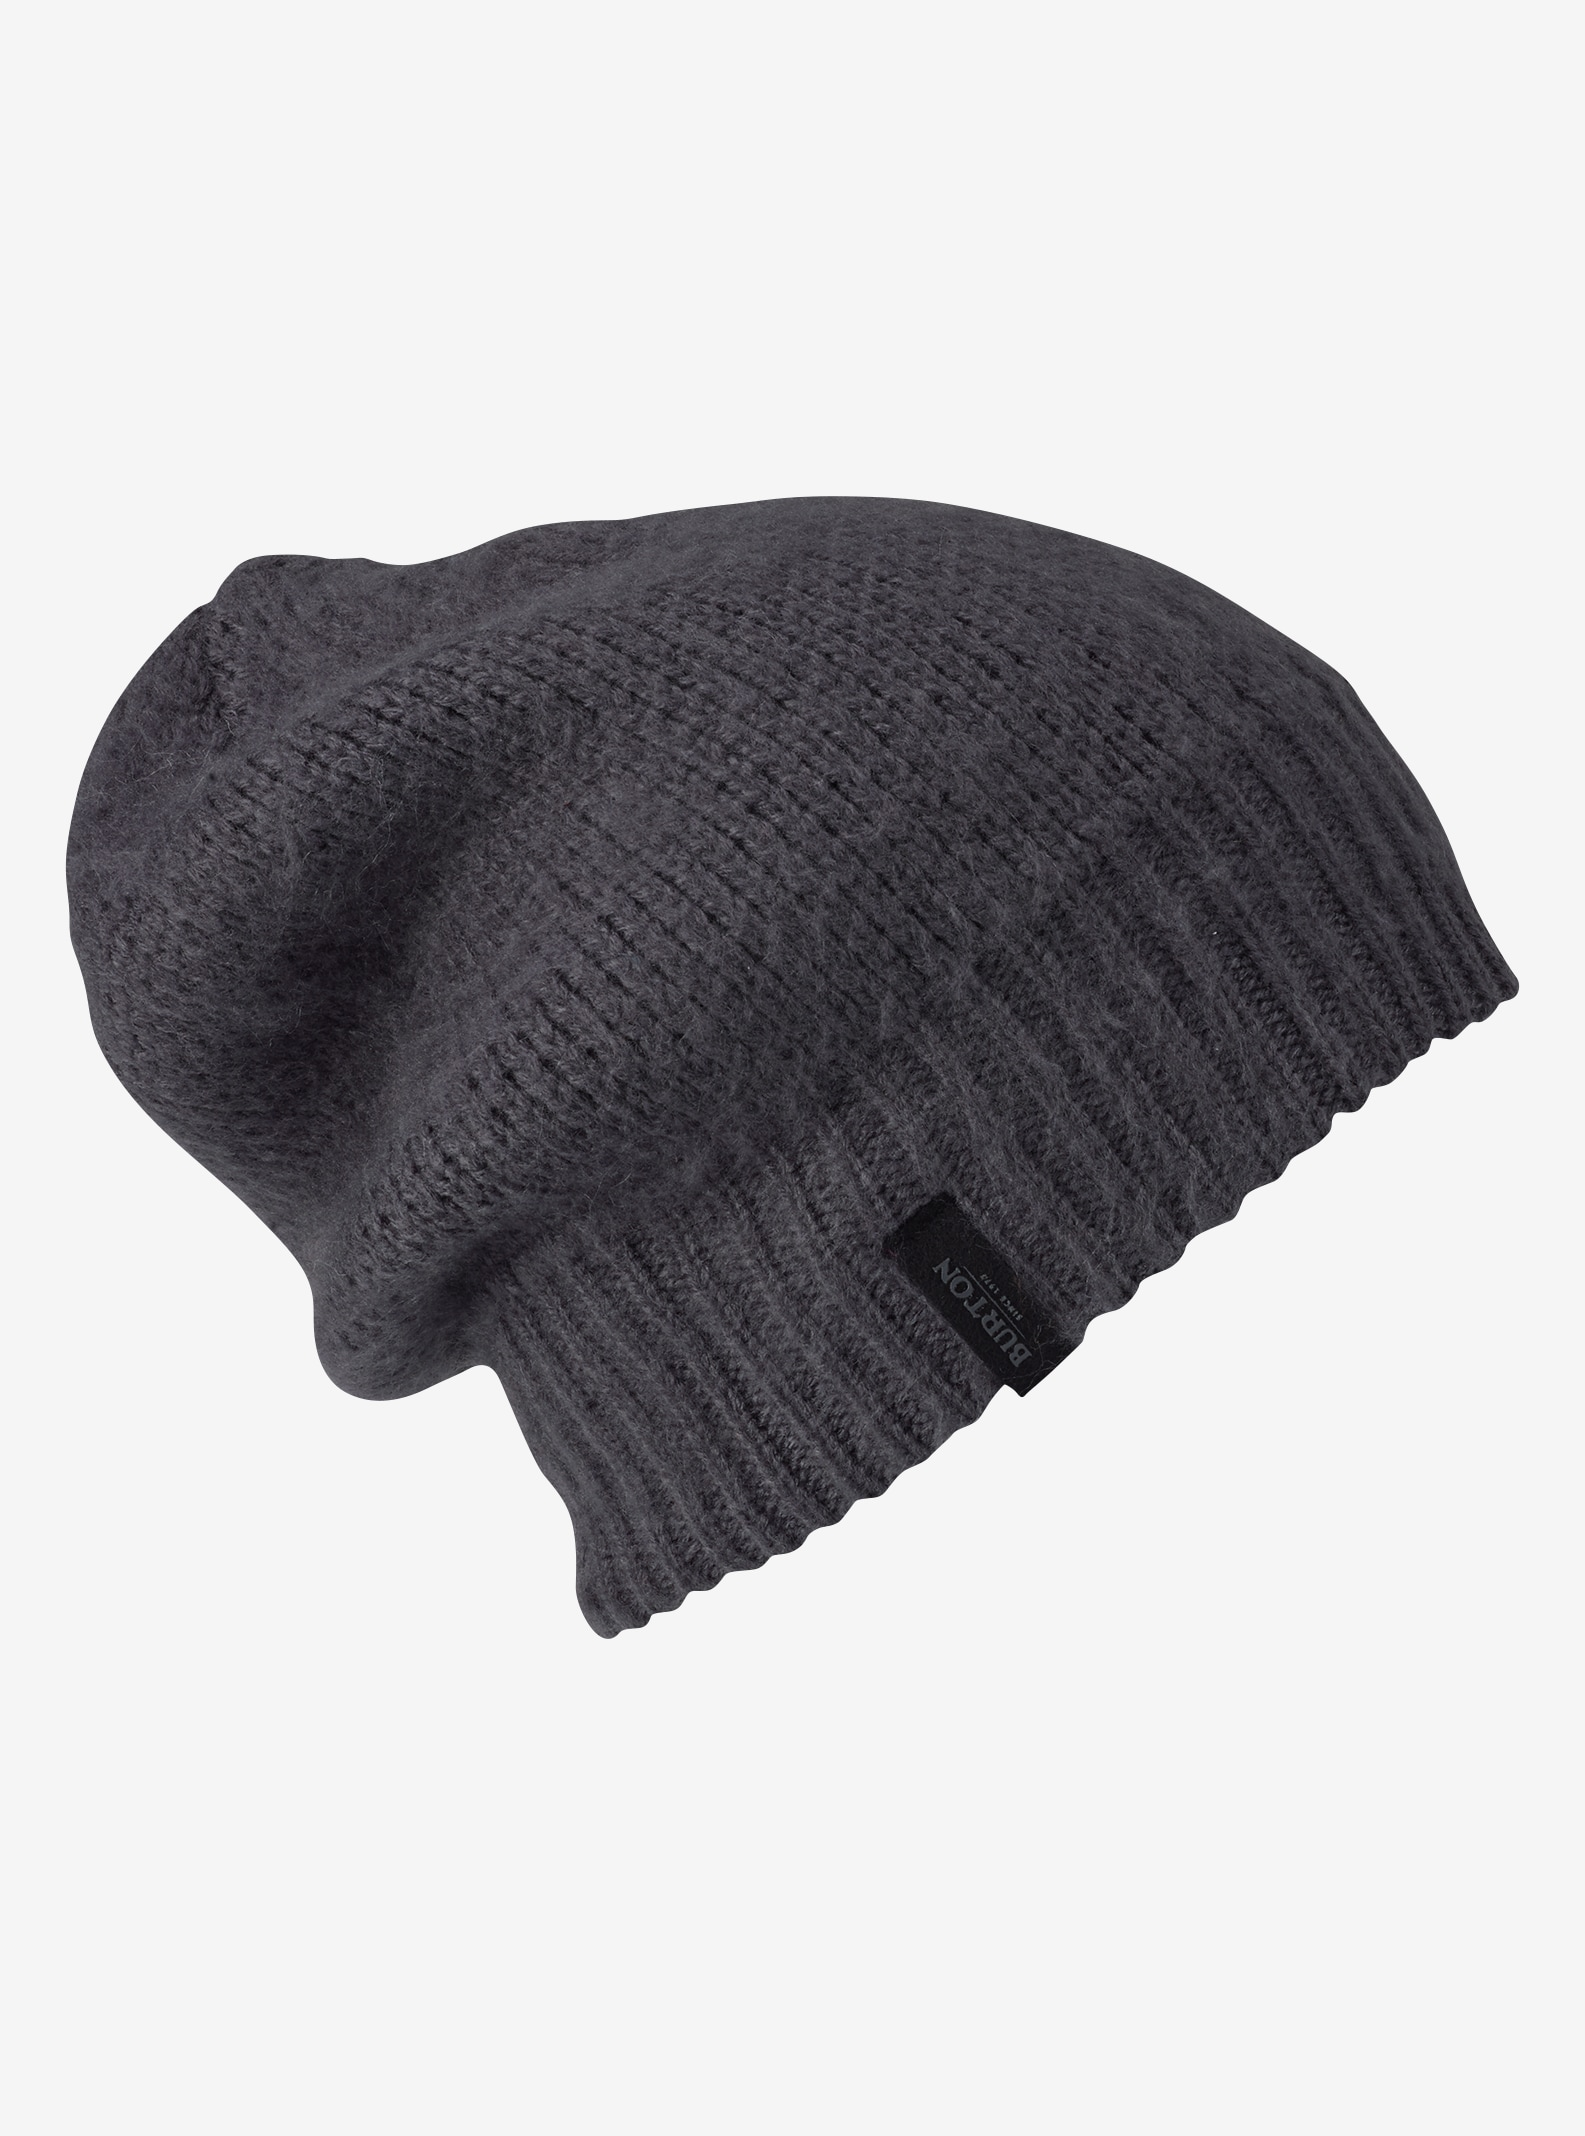 Burton Hempstead Beanie shown in Faded